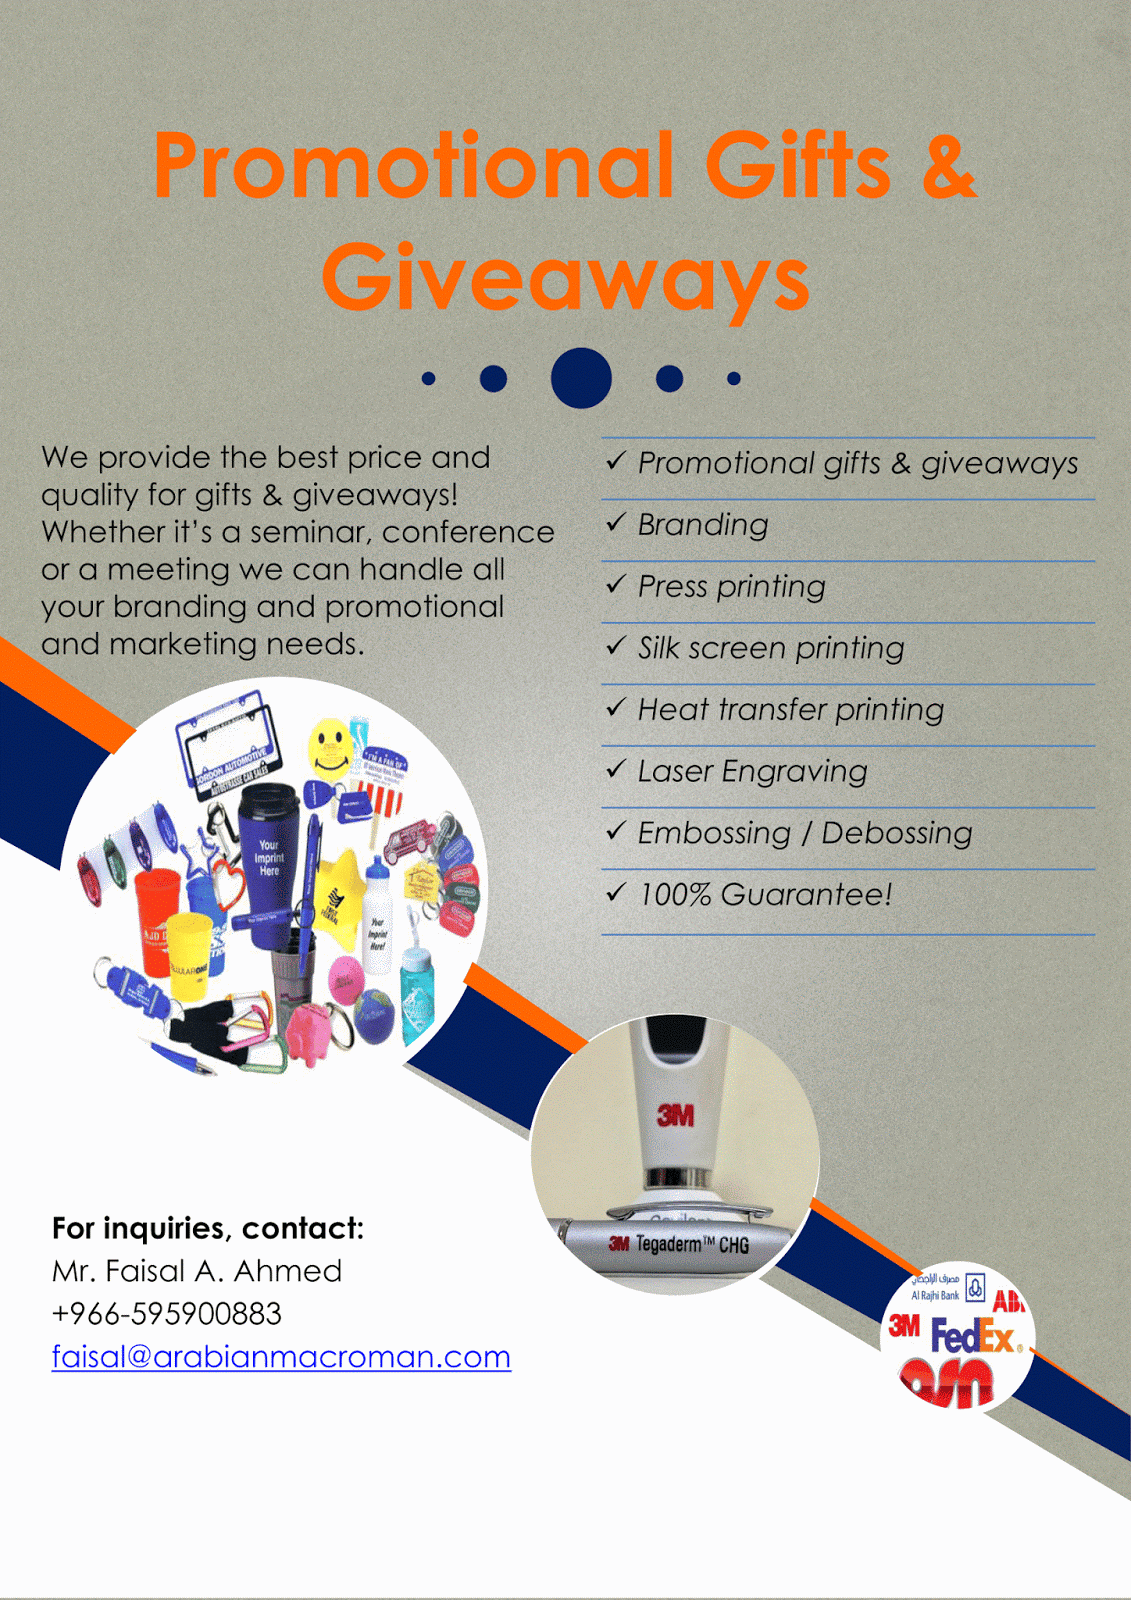 Promotional gifts & giveaways